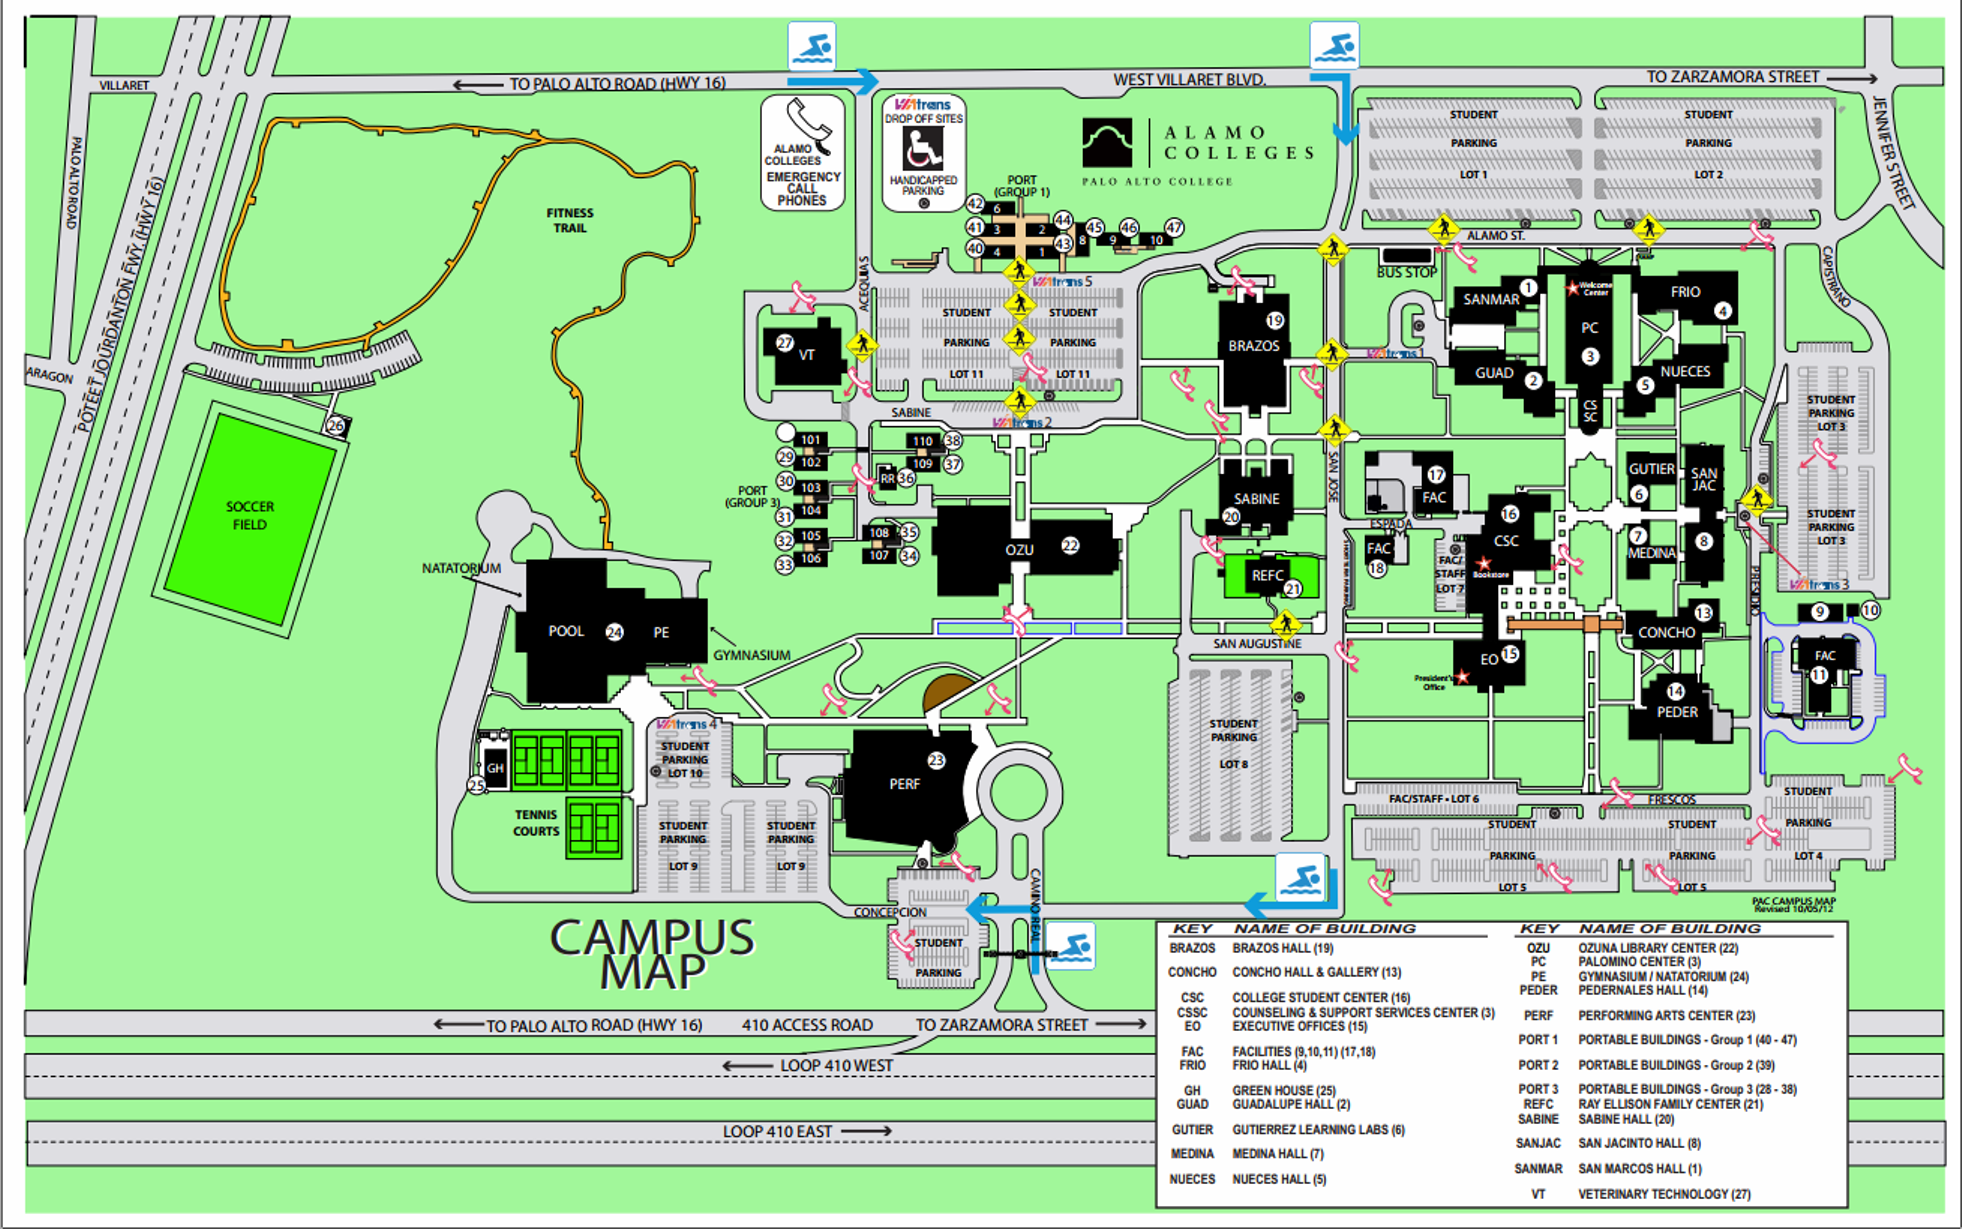 South Texas College Campus Map.Maps